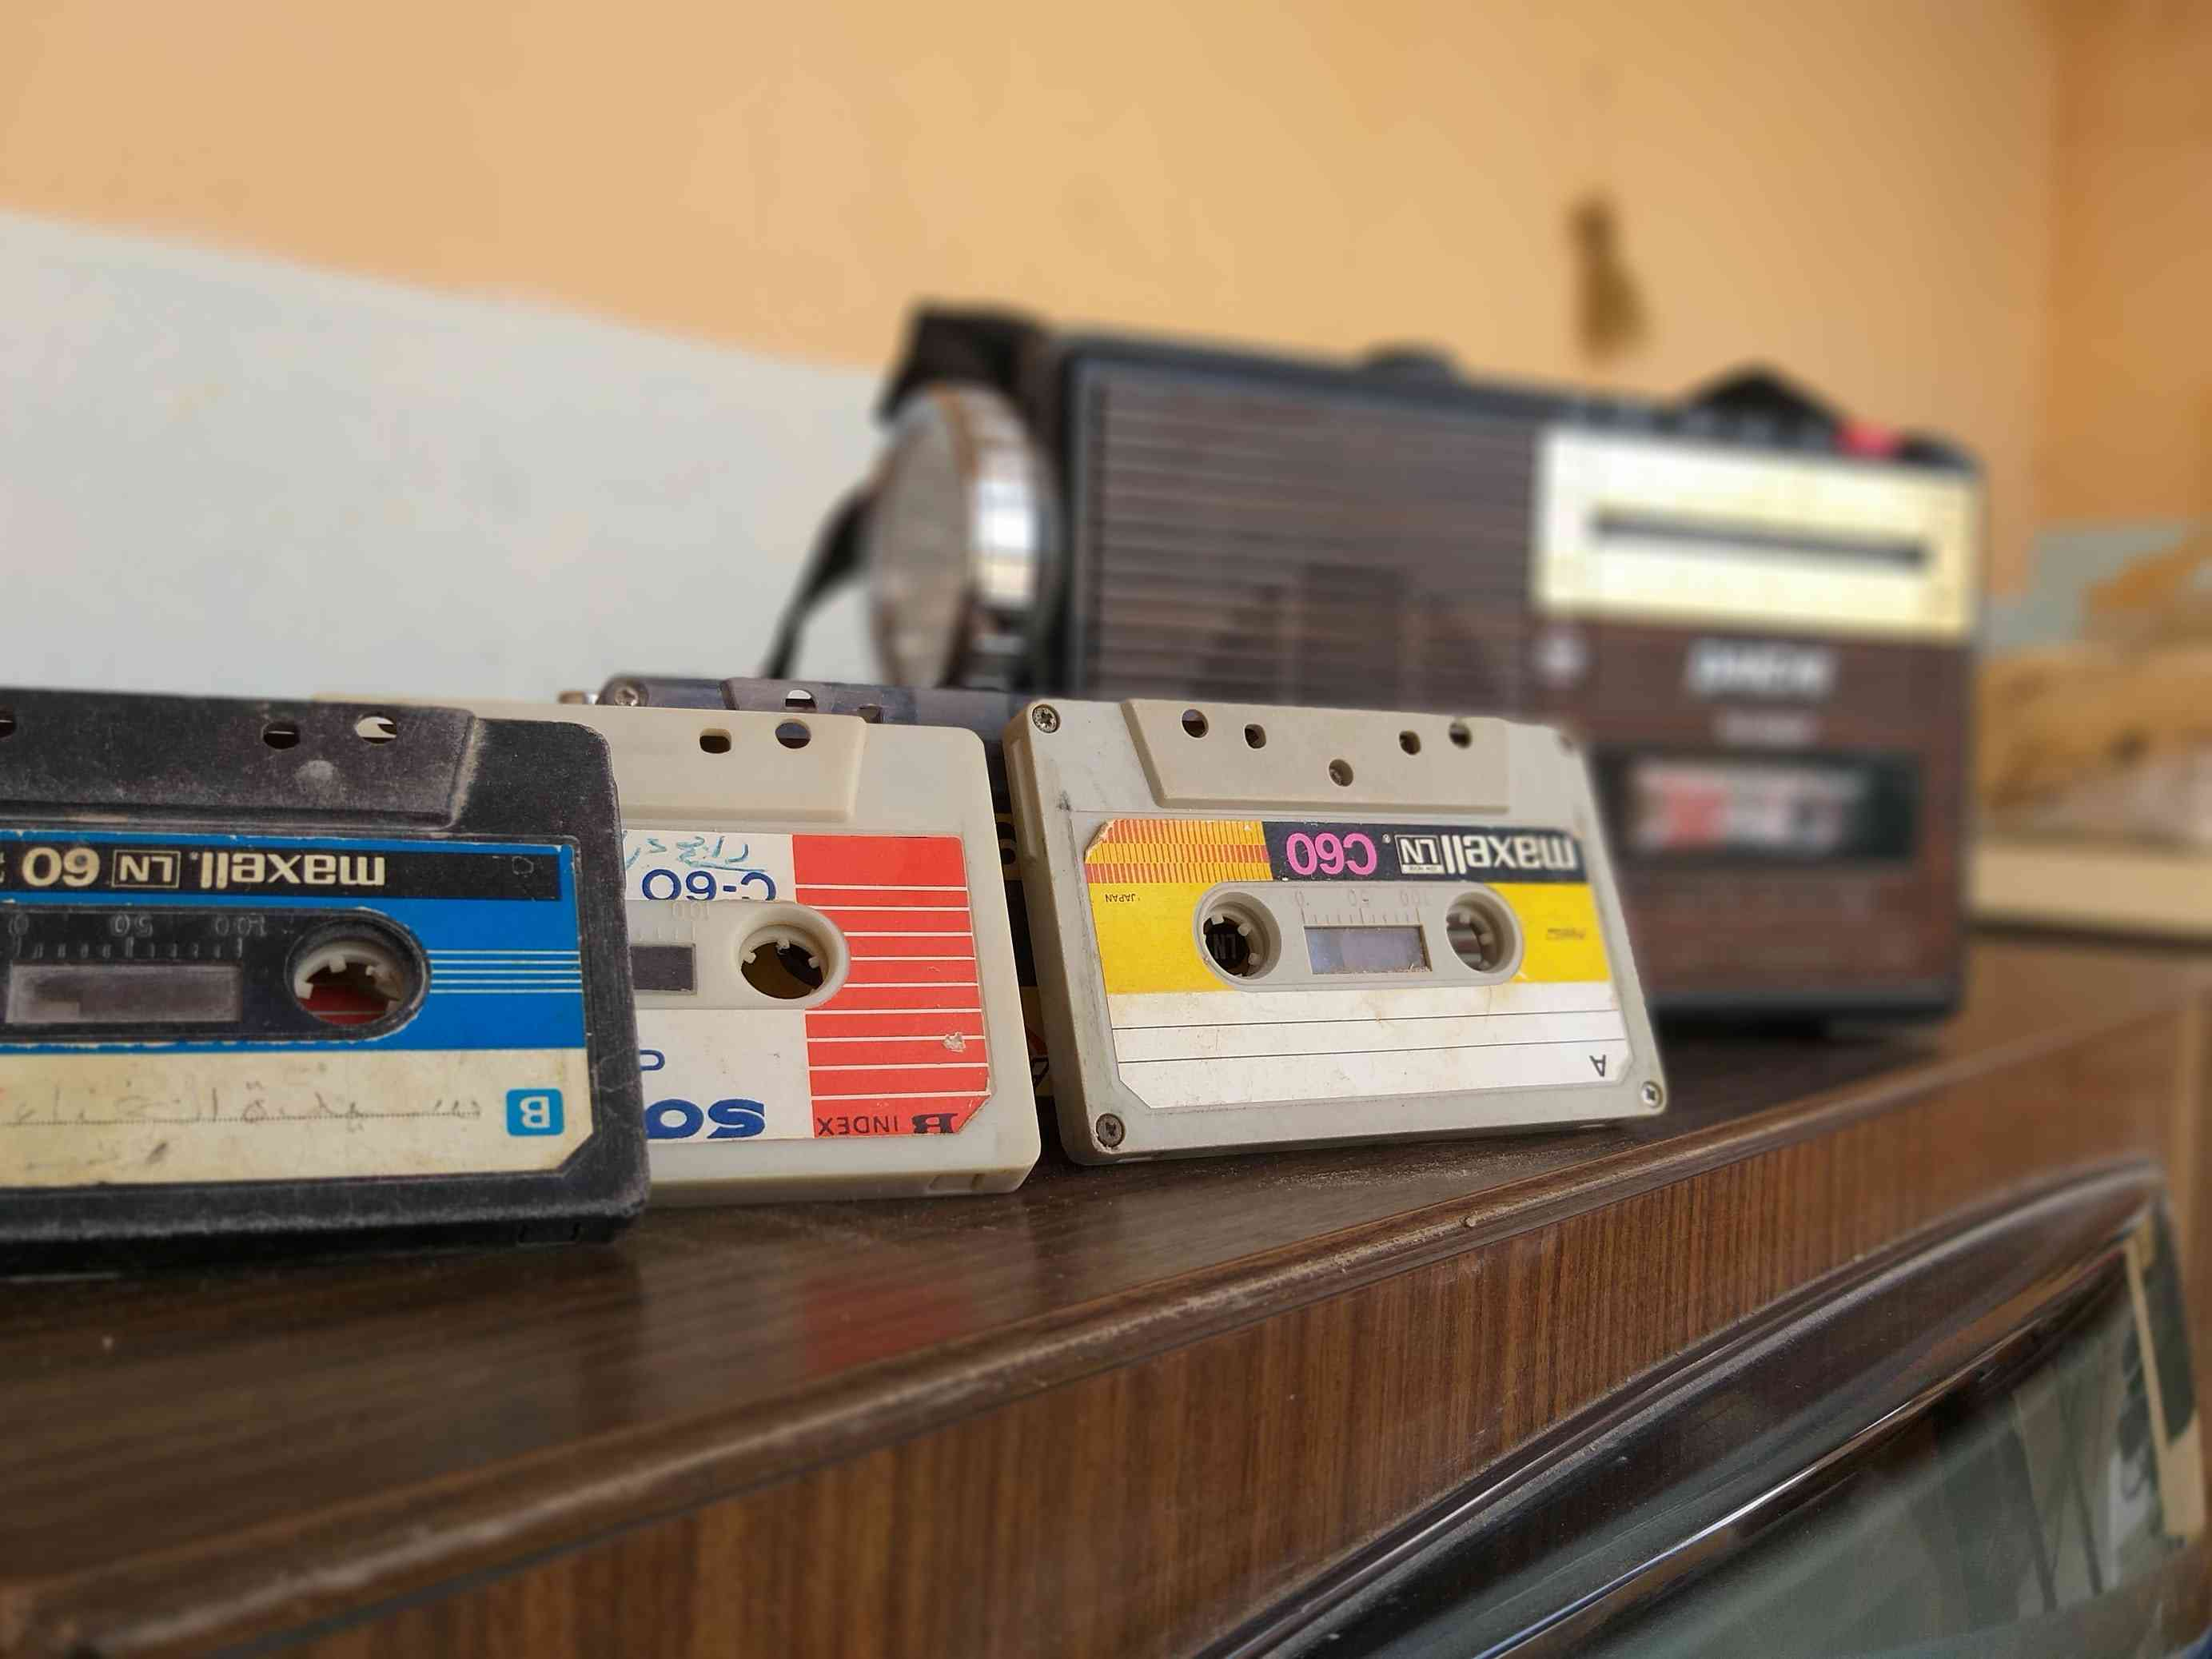 cassette tapes and radio on wooden table